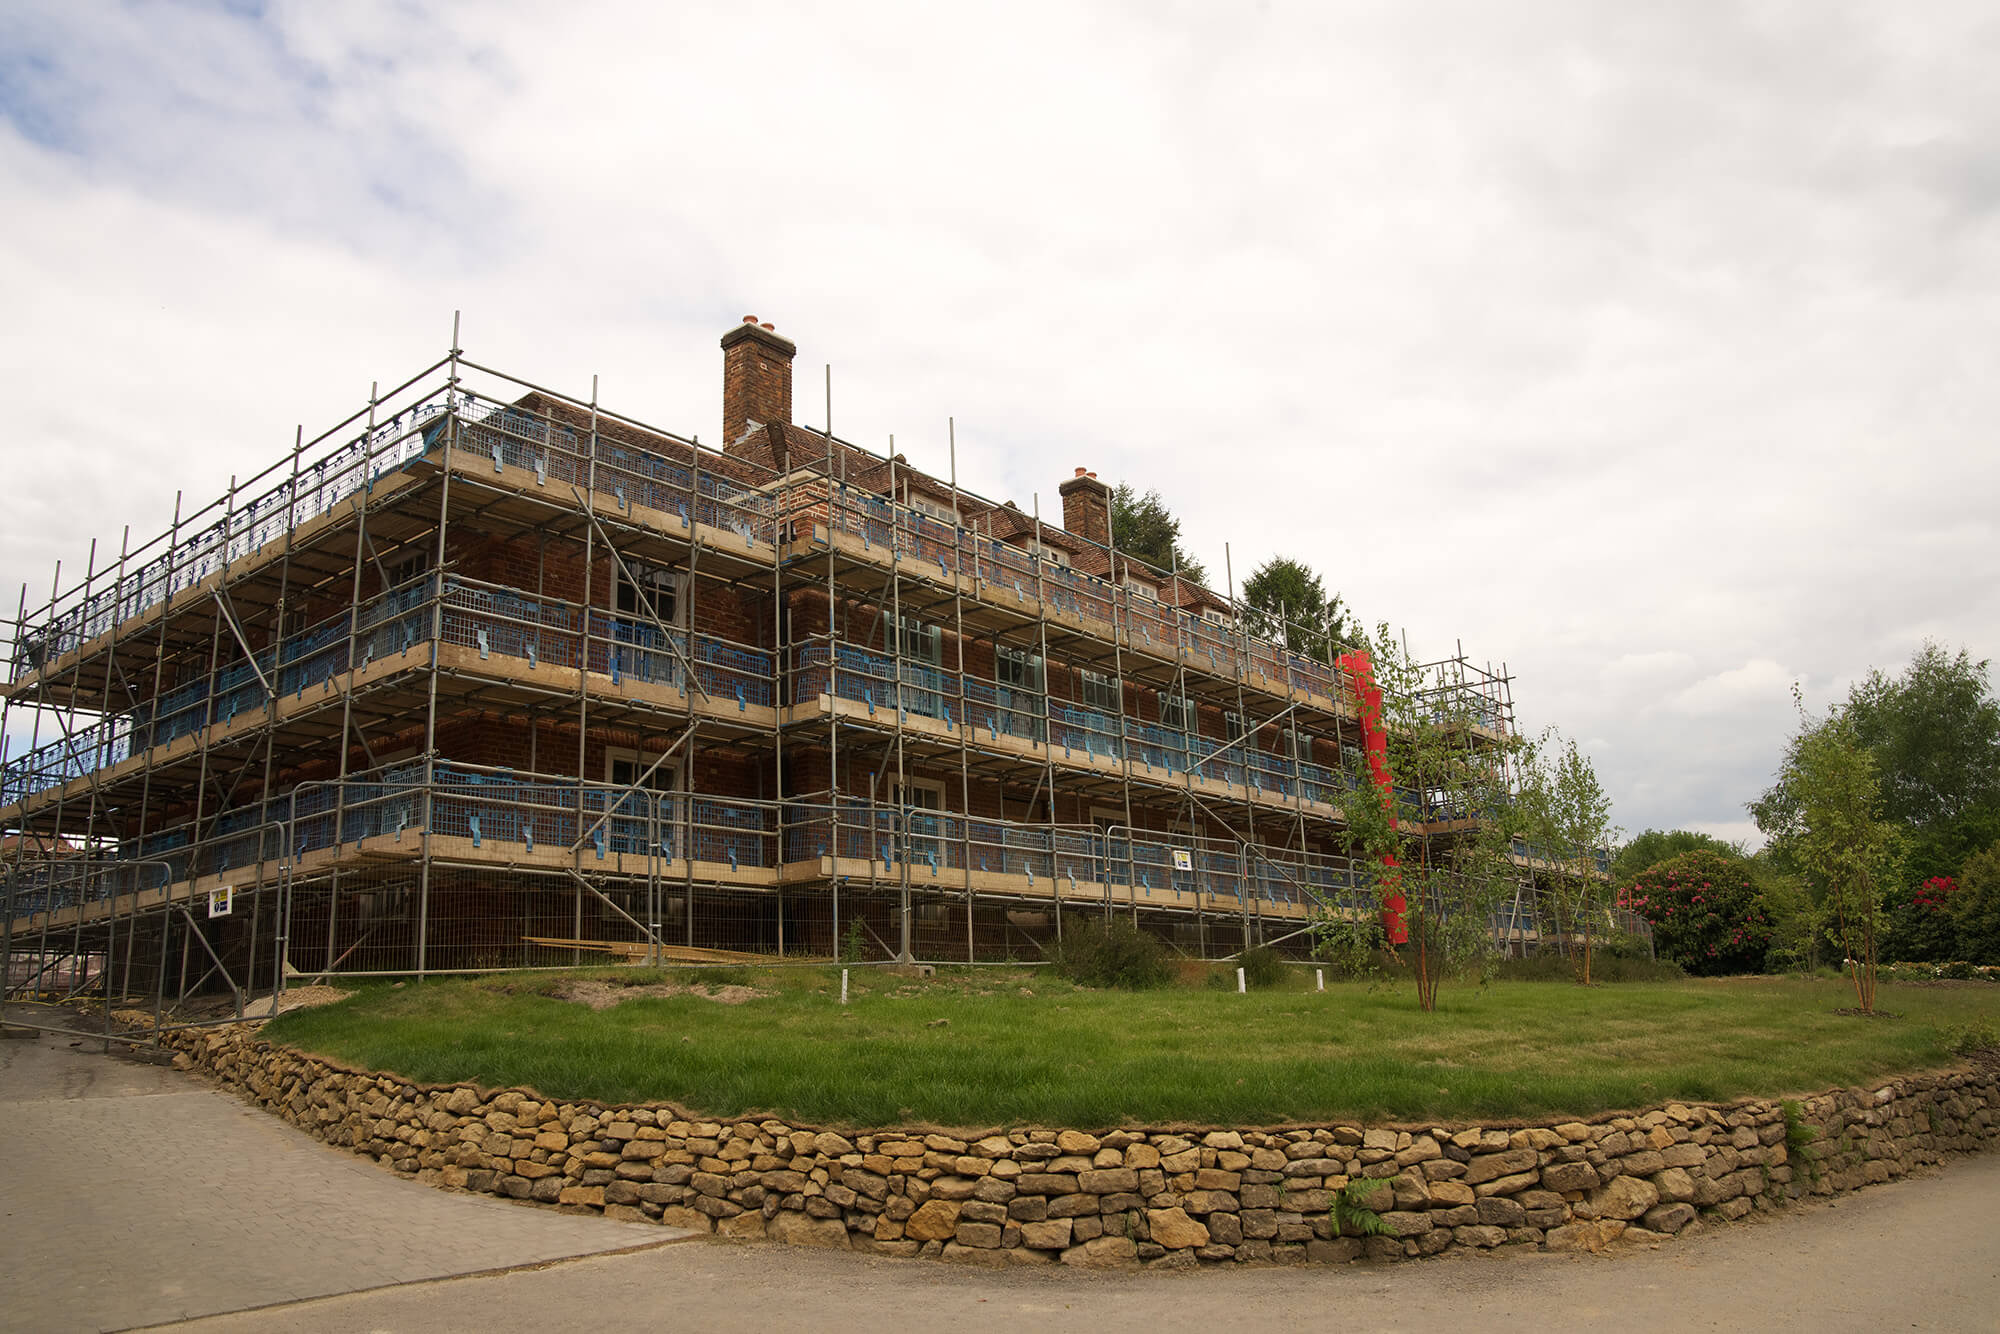 King Edward VII Estate surrounded by Scaffolding